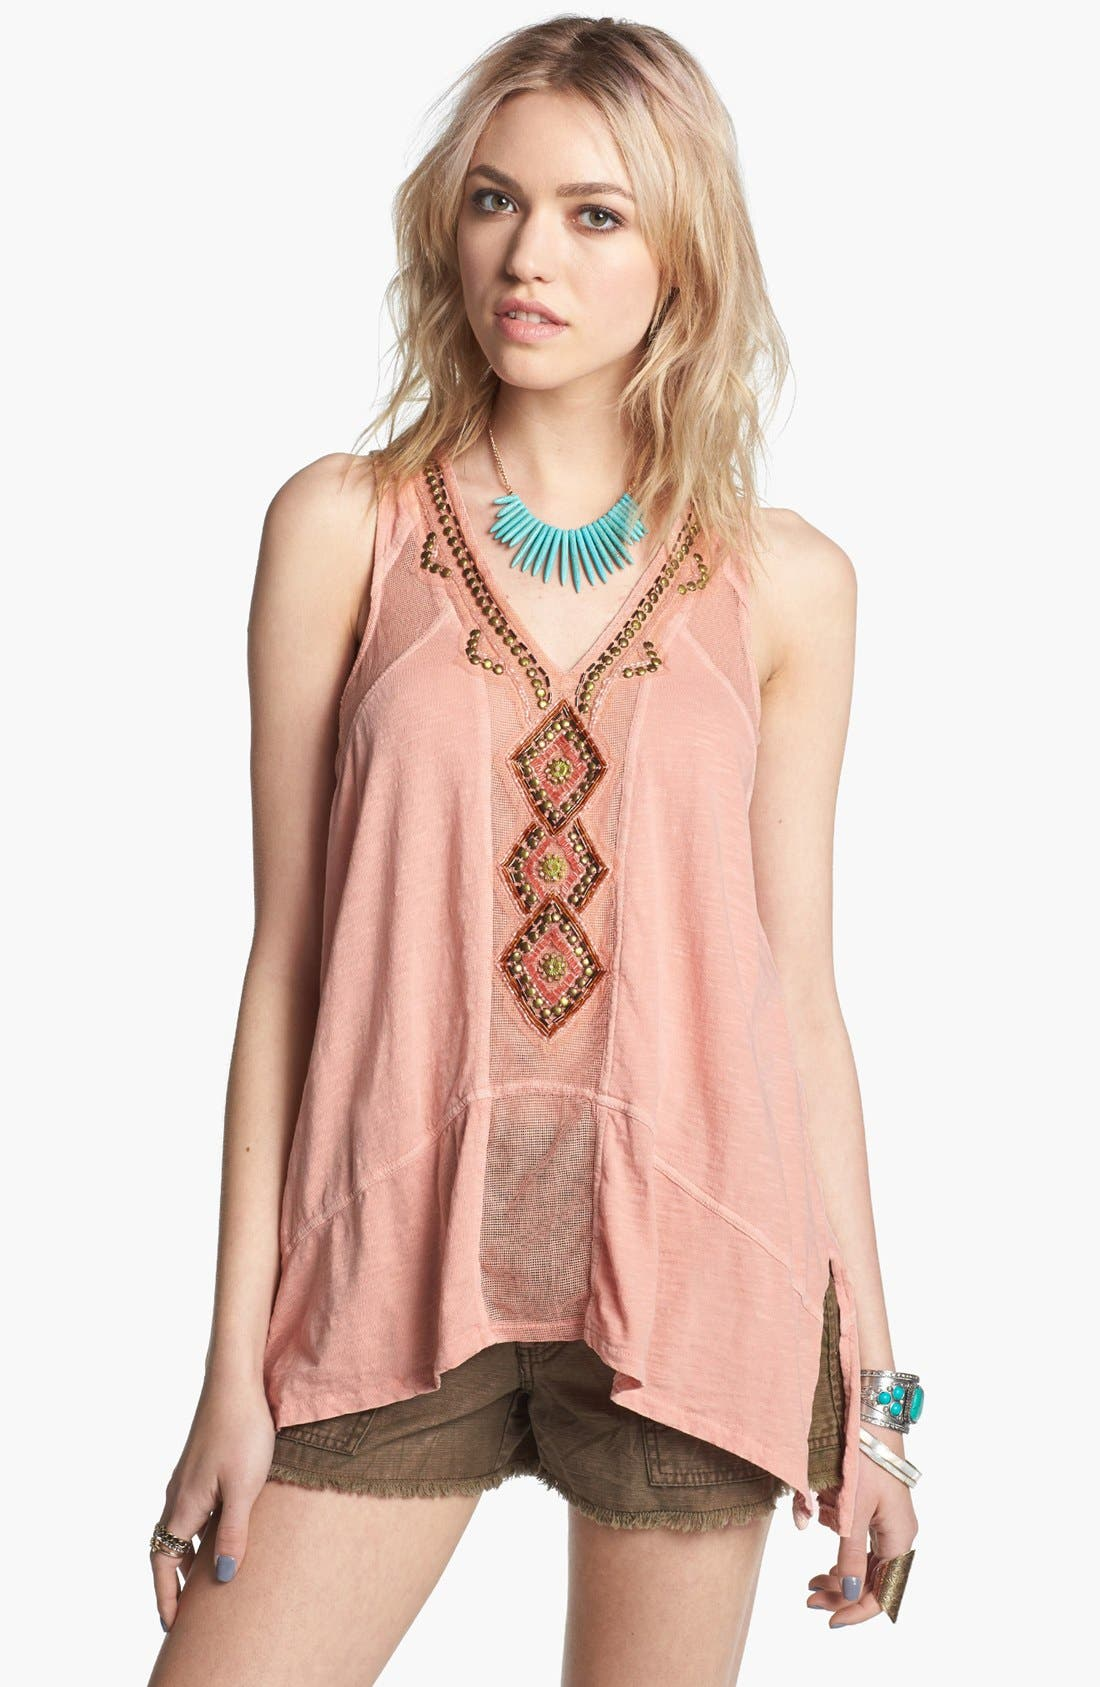 Alternate Image 1 Selected - Free People 'Focus on Center' Embellished Tank